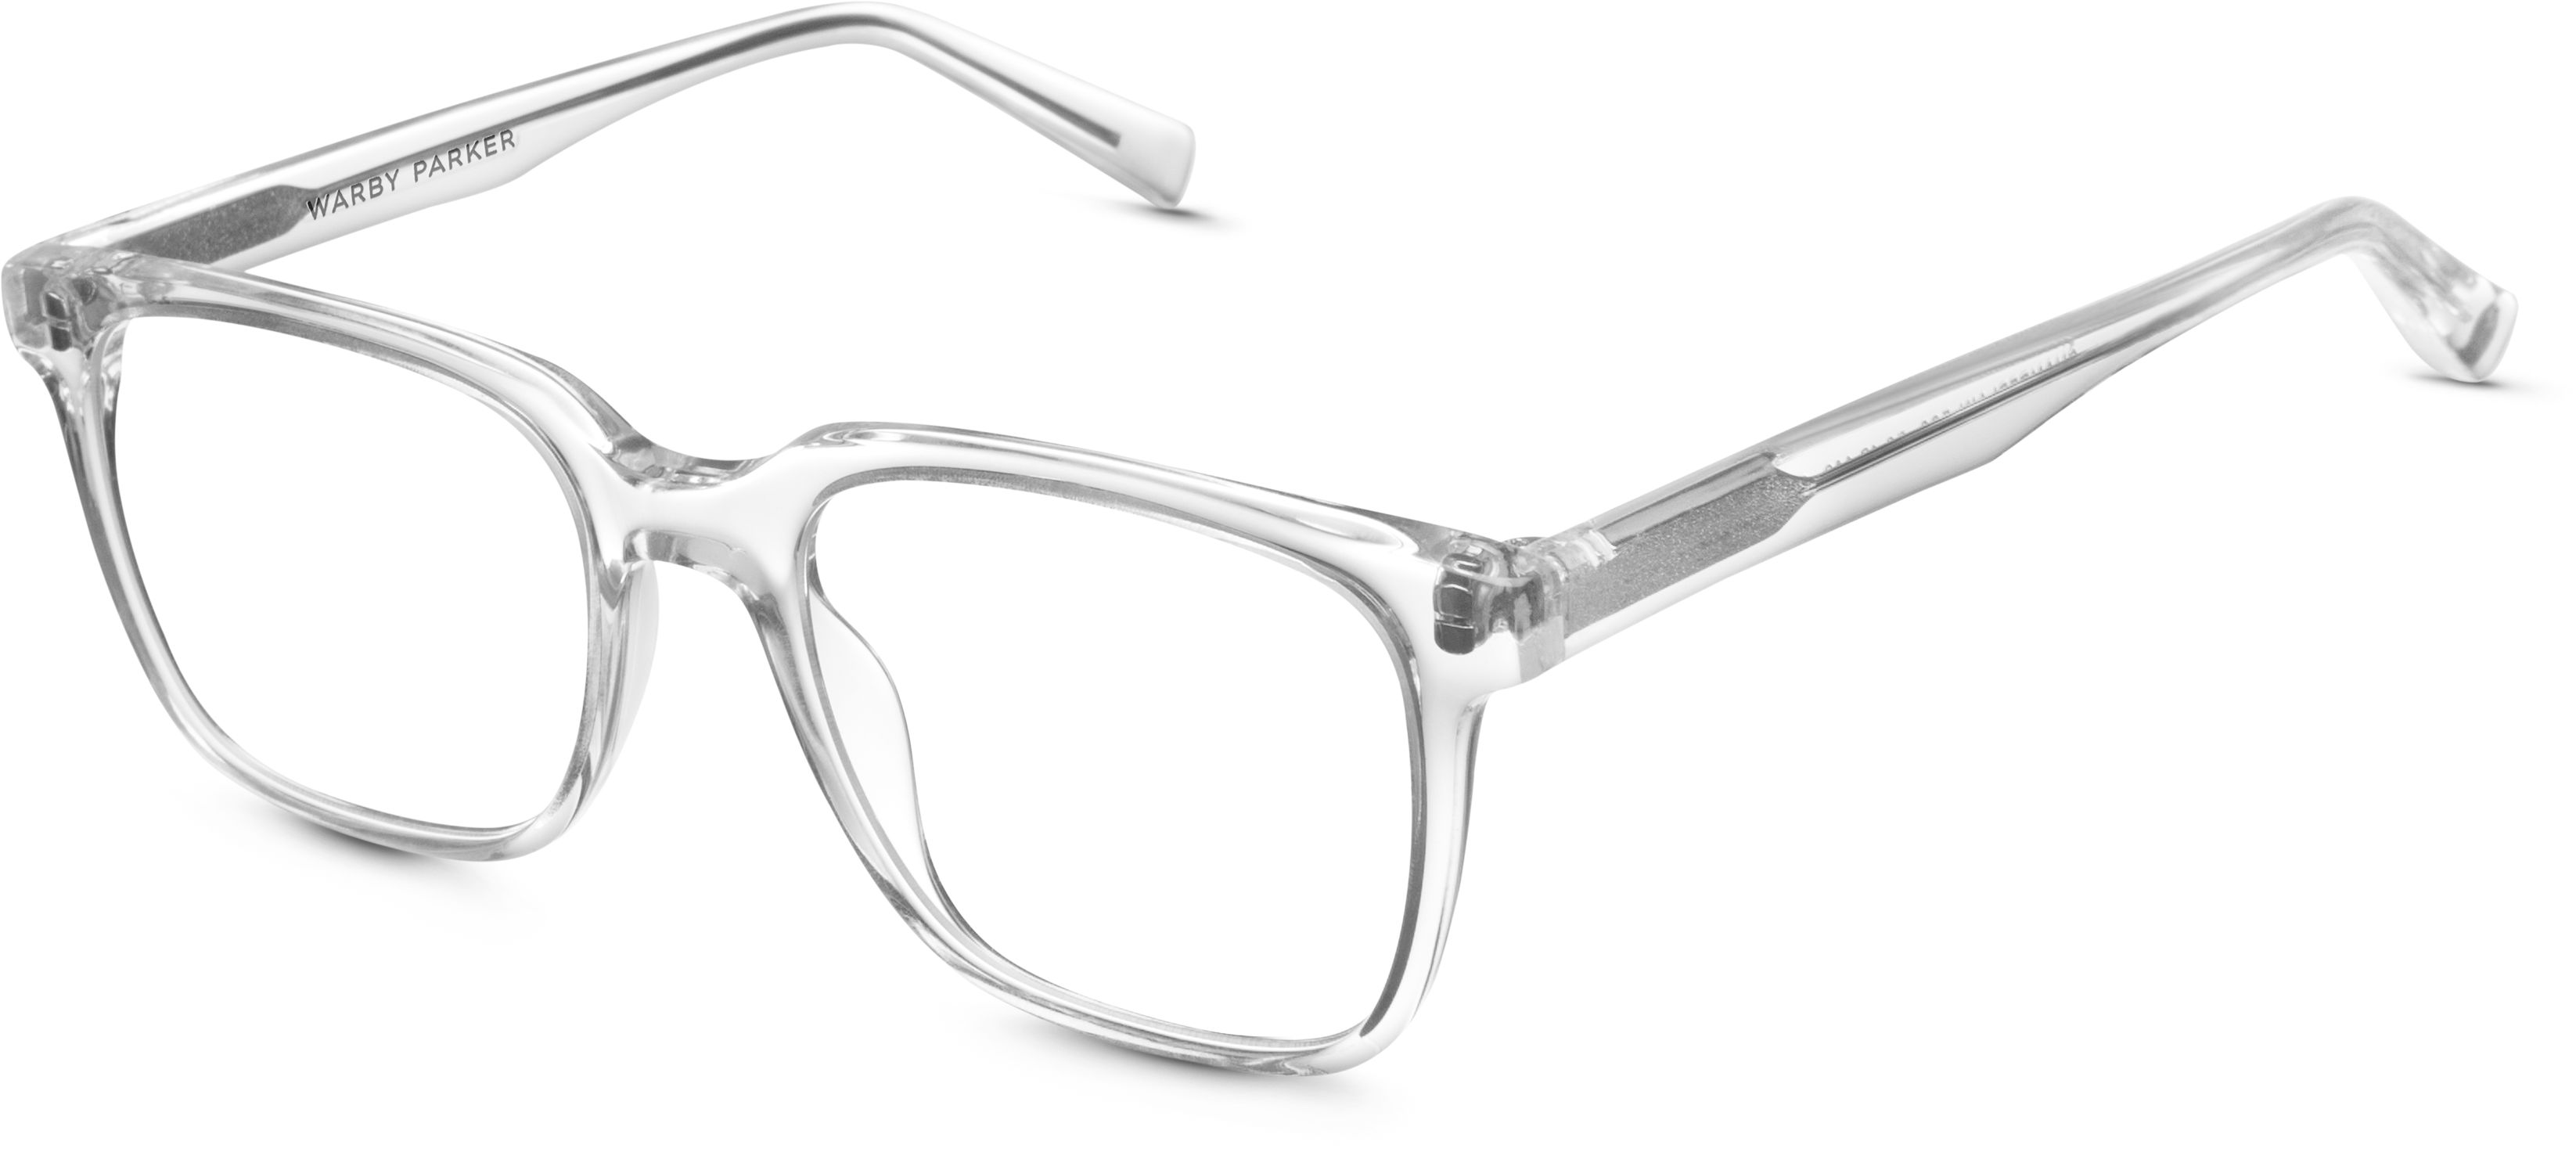 8f784d3343 Chamberlain Eyeglasses in Crystal for Women